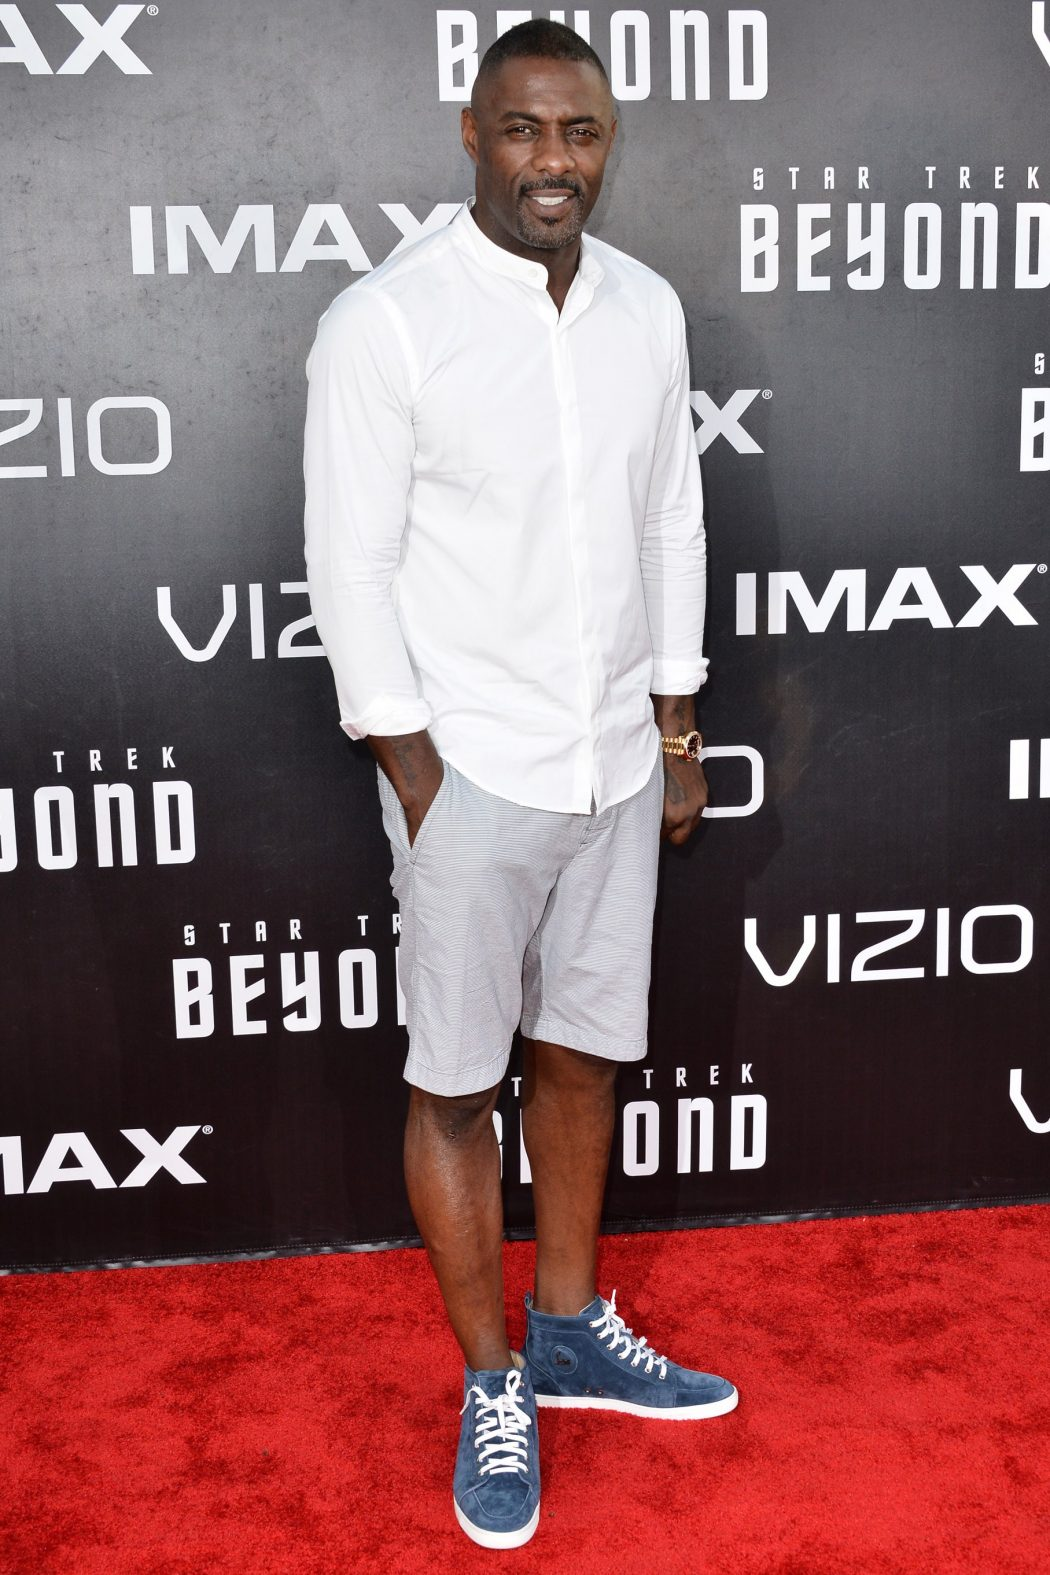 Idris-Elba-Style-2016-07-20-16 15 Male Celebrities Fashion Trends for Summer 2018